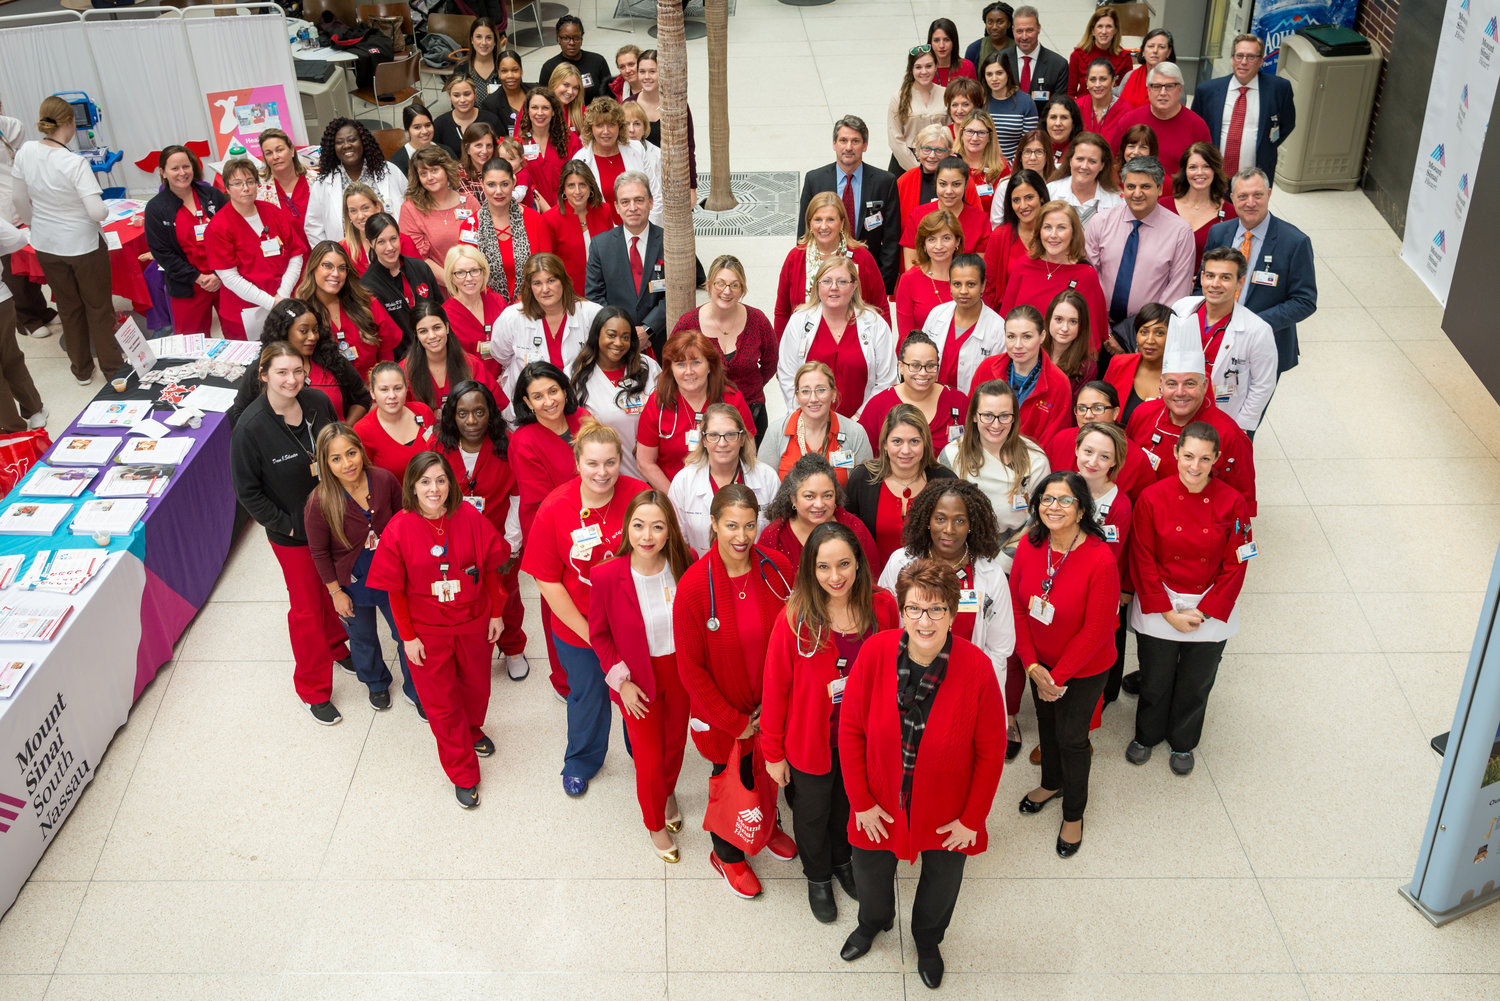 Mount Sinai South Nassau hosted its annual Go Red for Women Day celebration on Feb. 7, which promoted heart health.